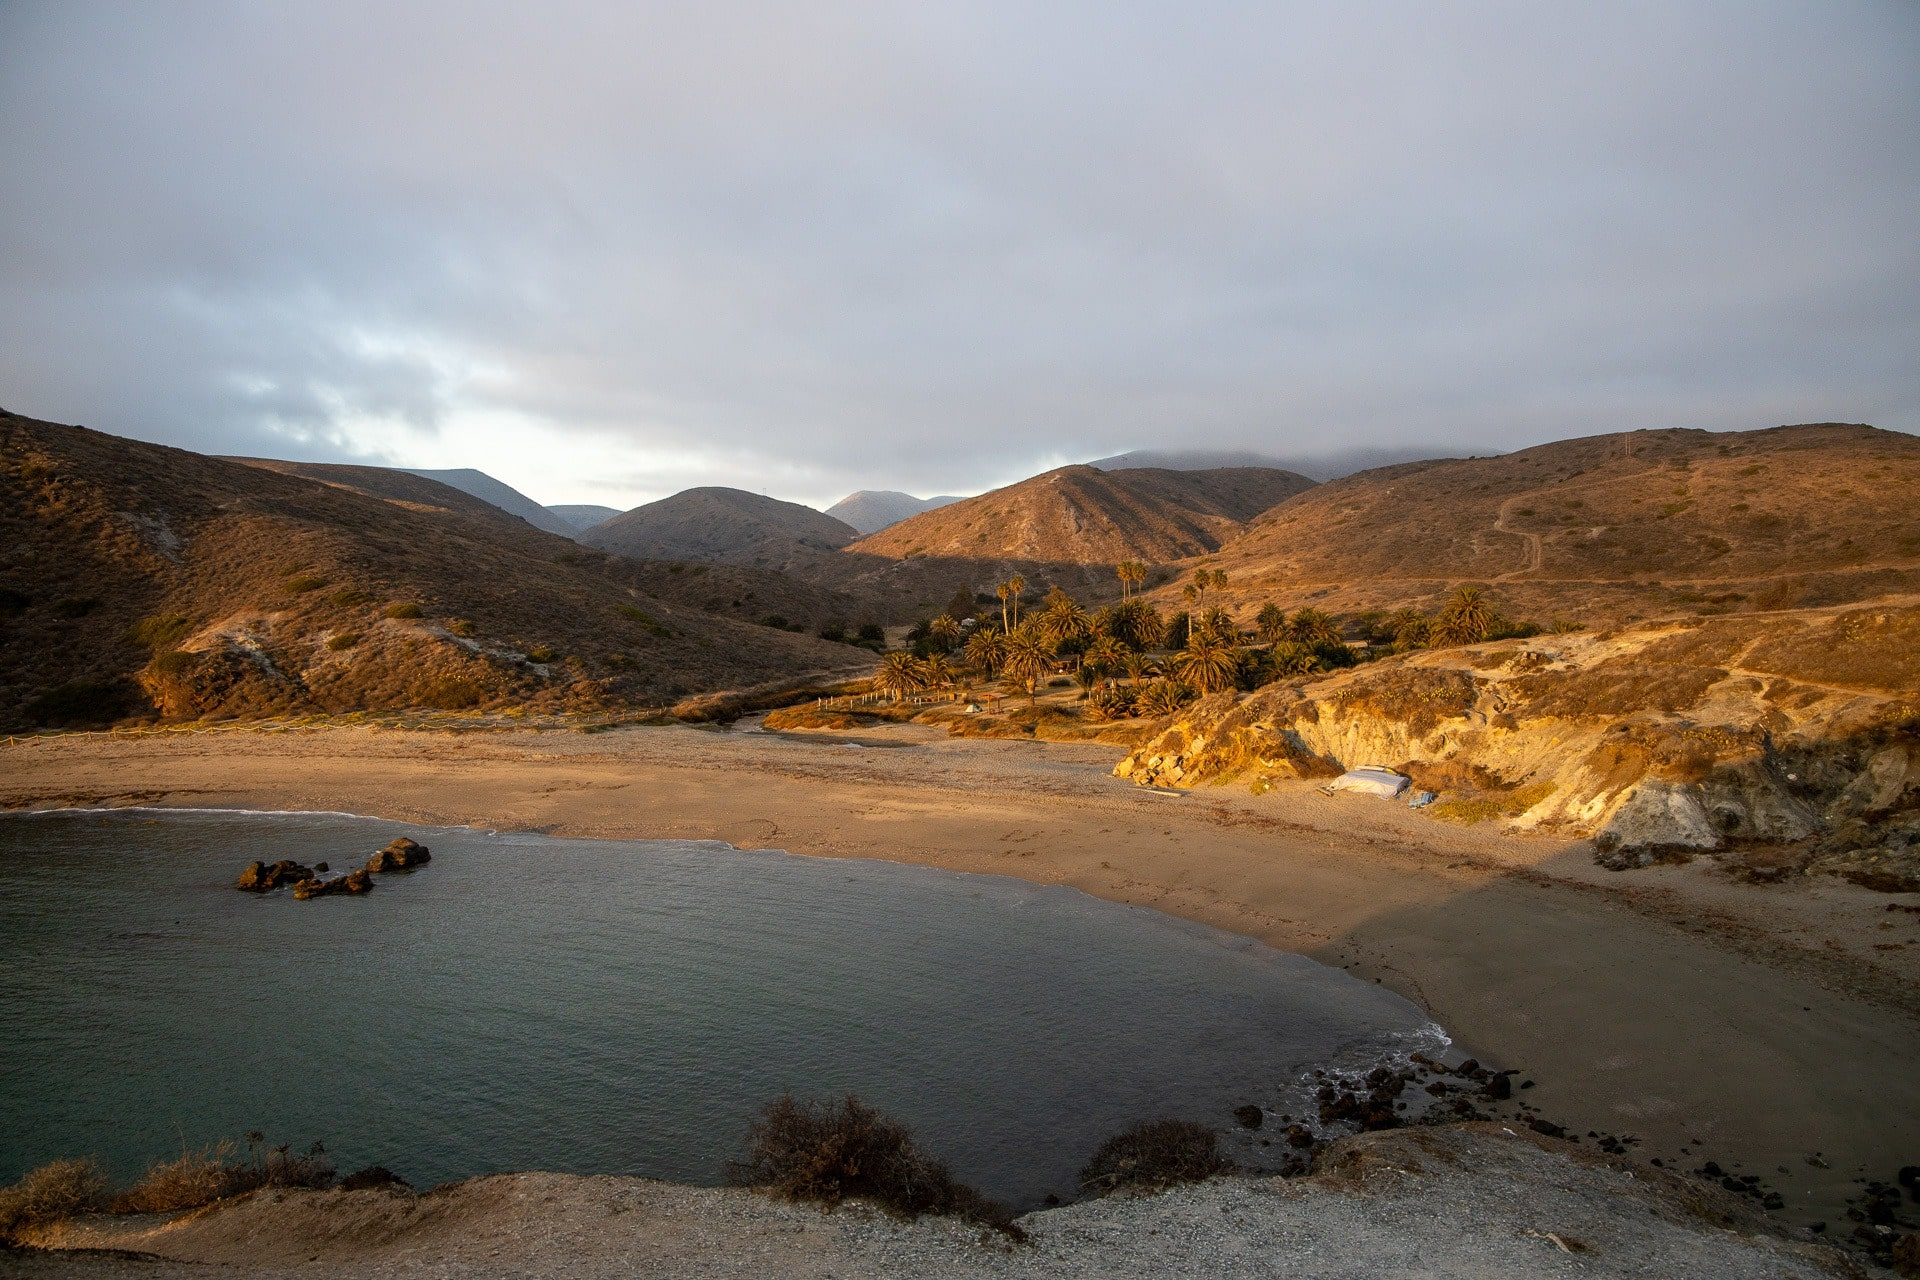 Little Harbor Campground on Catalina Island // Plan a backpacking trip on the Trans-Catalina Trail on Catalina Island with this trail guide with tips on the best campsites, water availability, gear & more